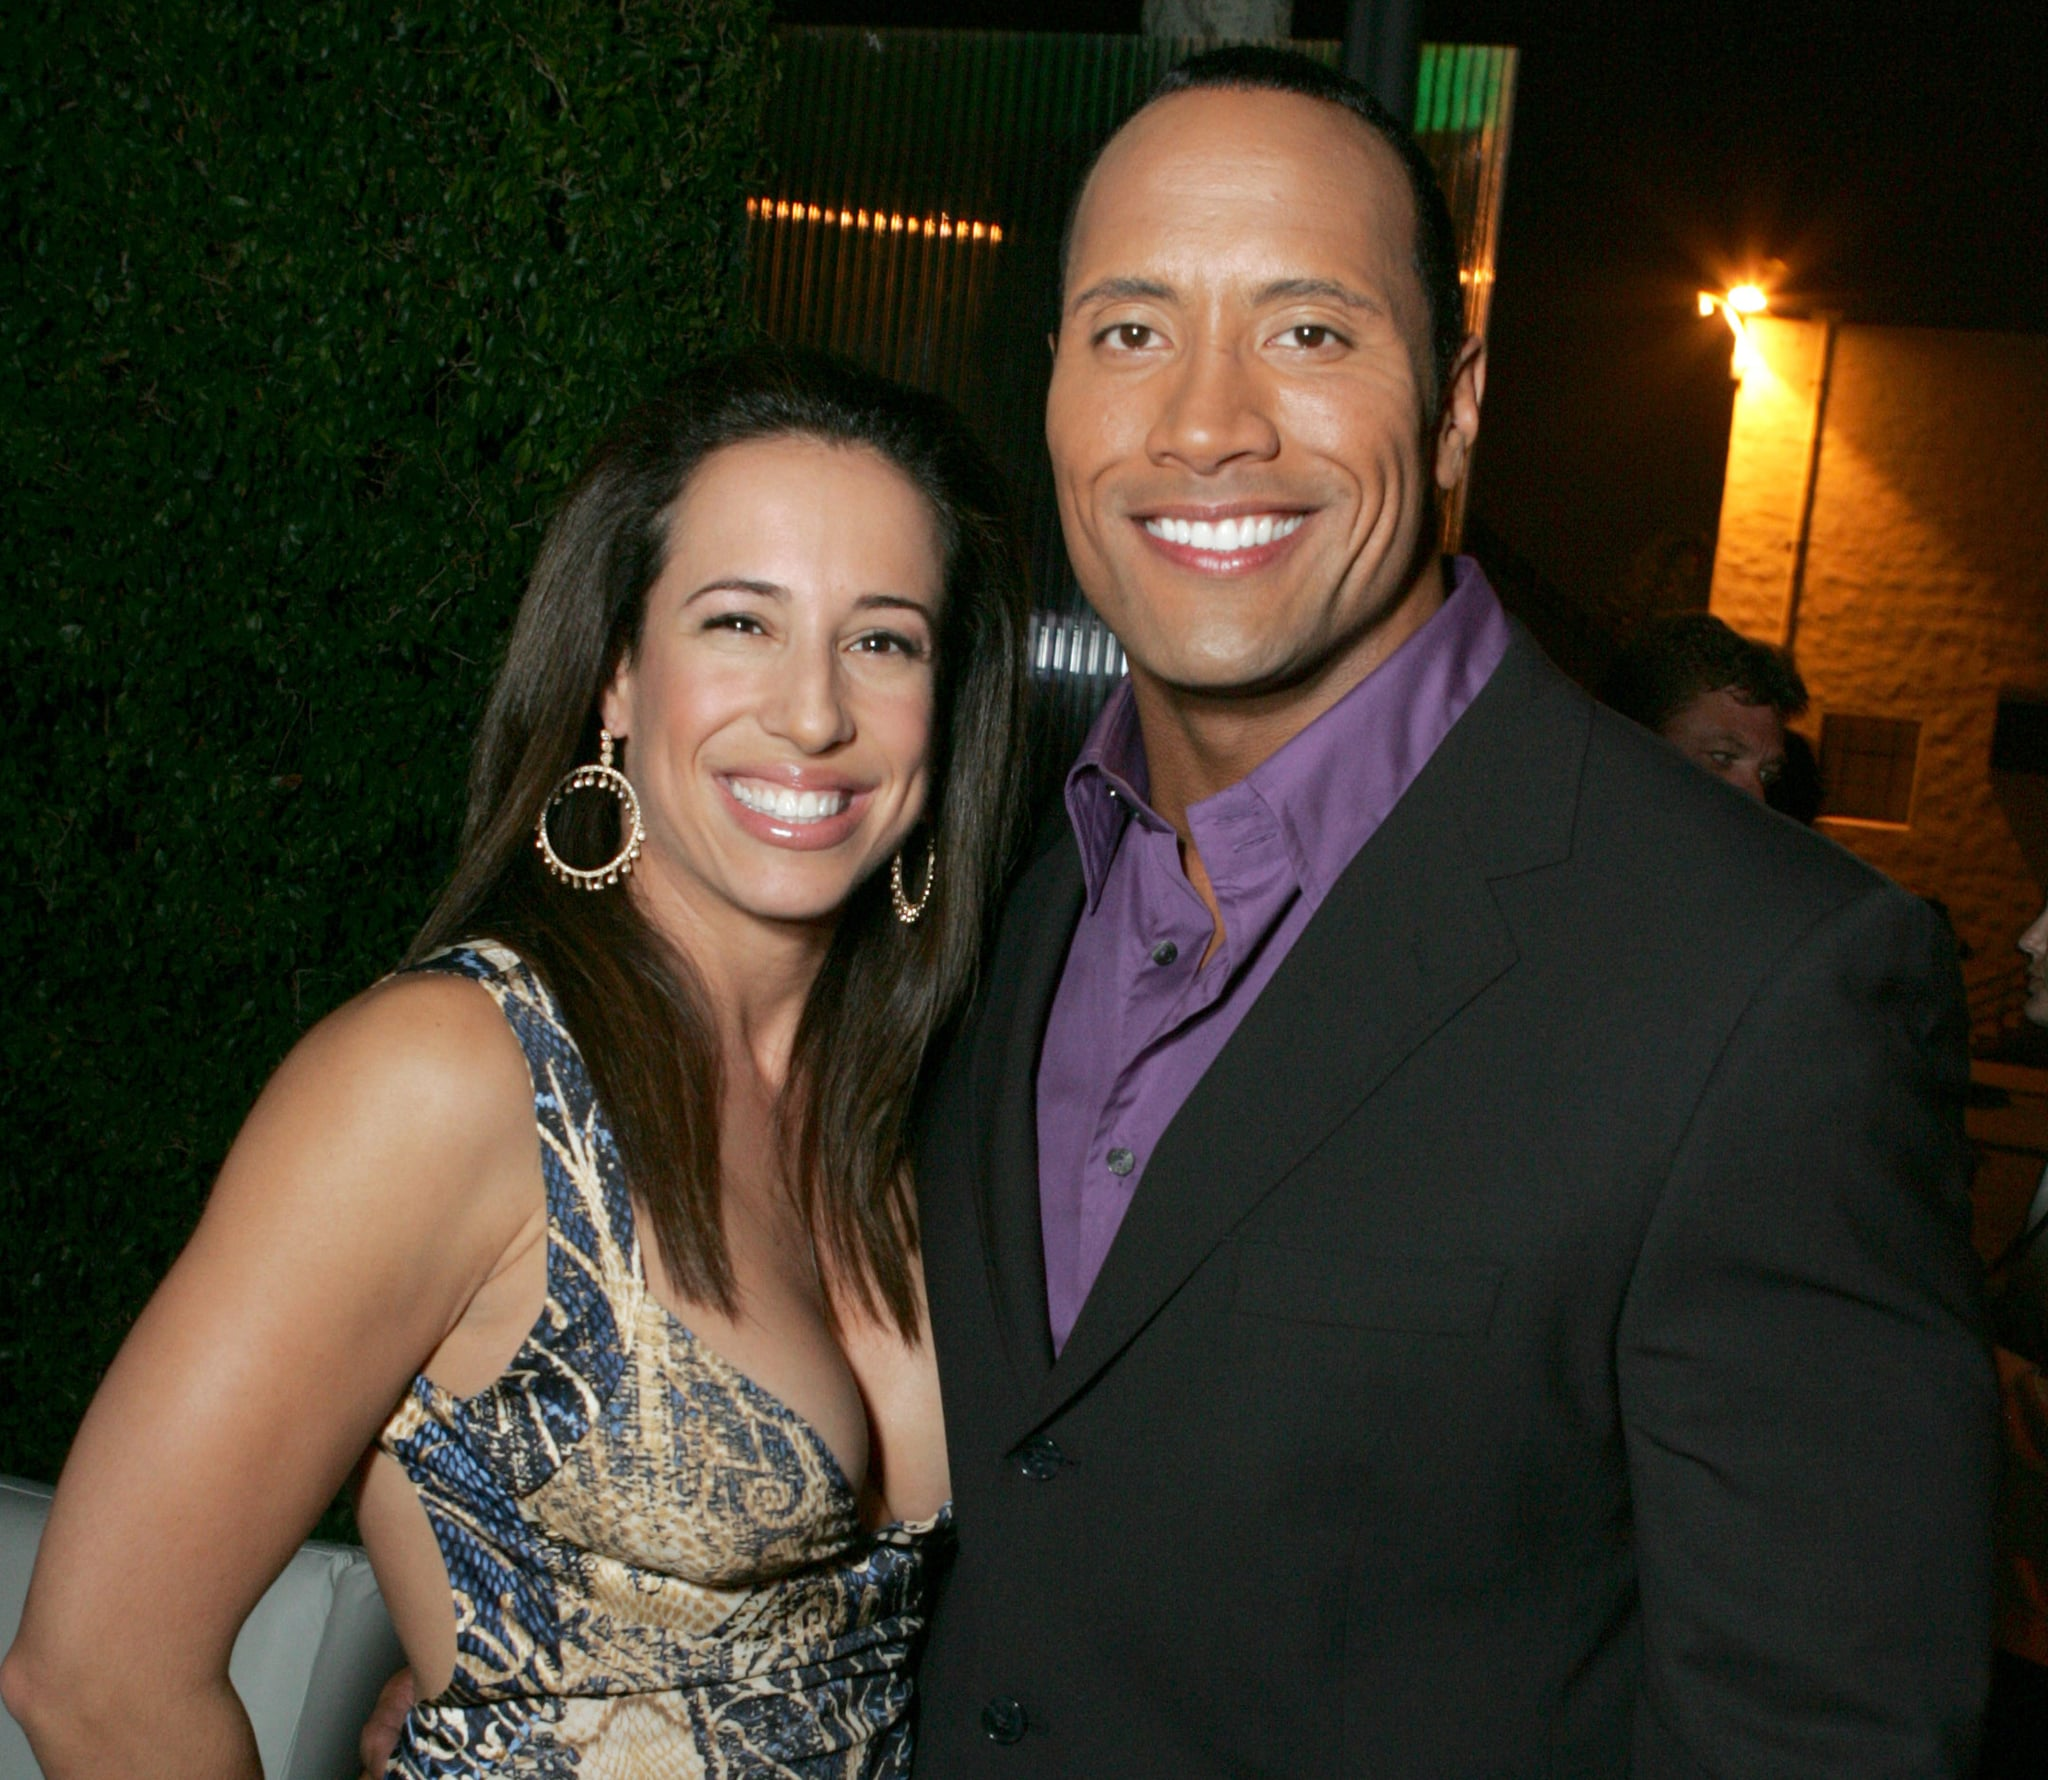 Who is dwayne johnsons ex wife dany garcia popsugar celebrity before dwayne johnson ever found love with lauren hashian he was once married to his college sweetheart dany garcia m4hsunfo